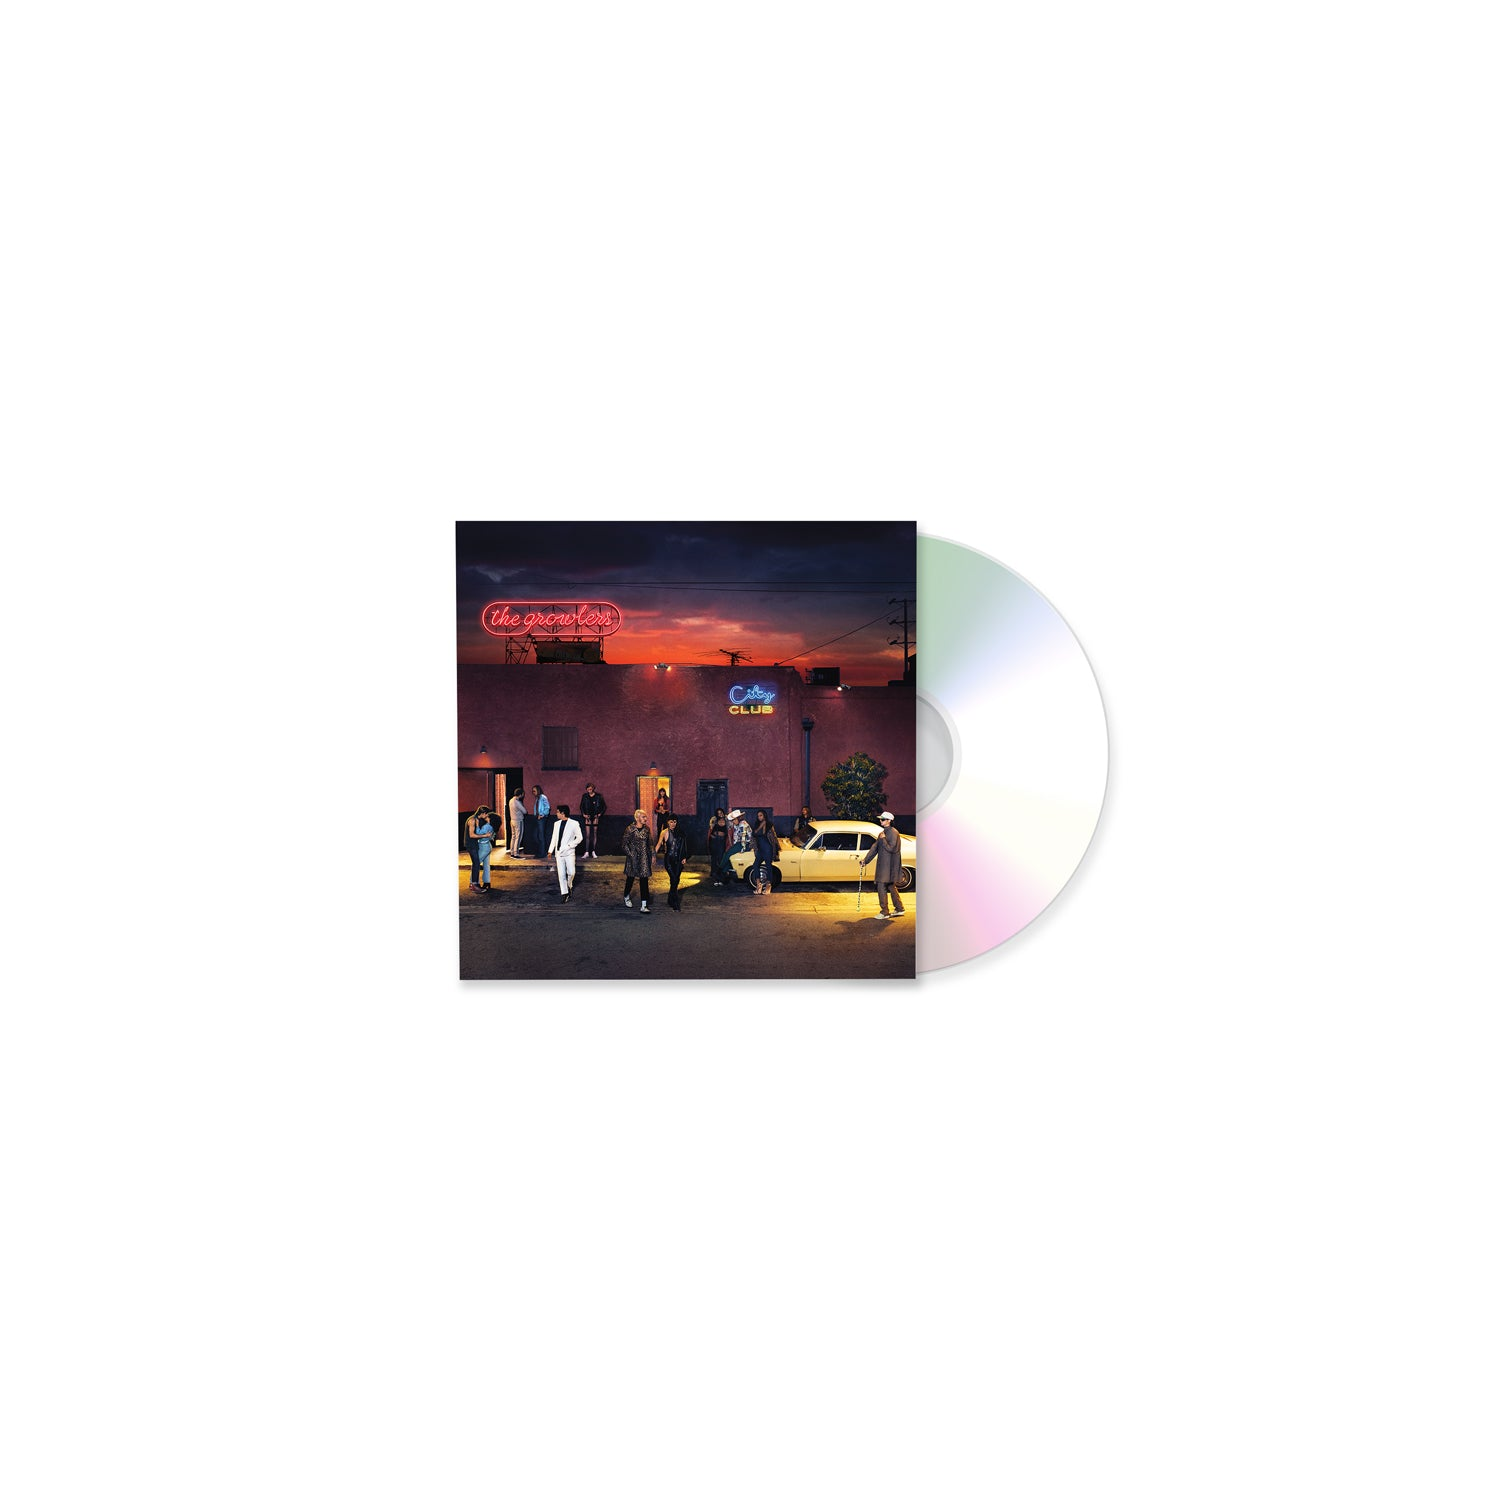 The Growlers 'City Club' CD